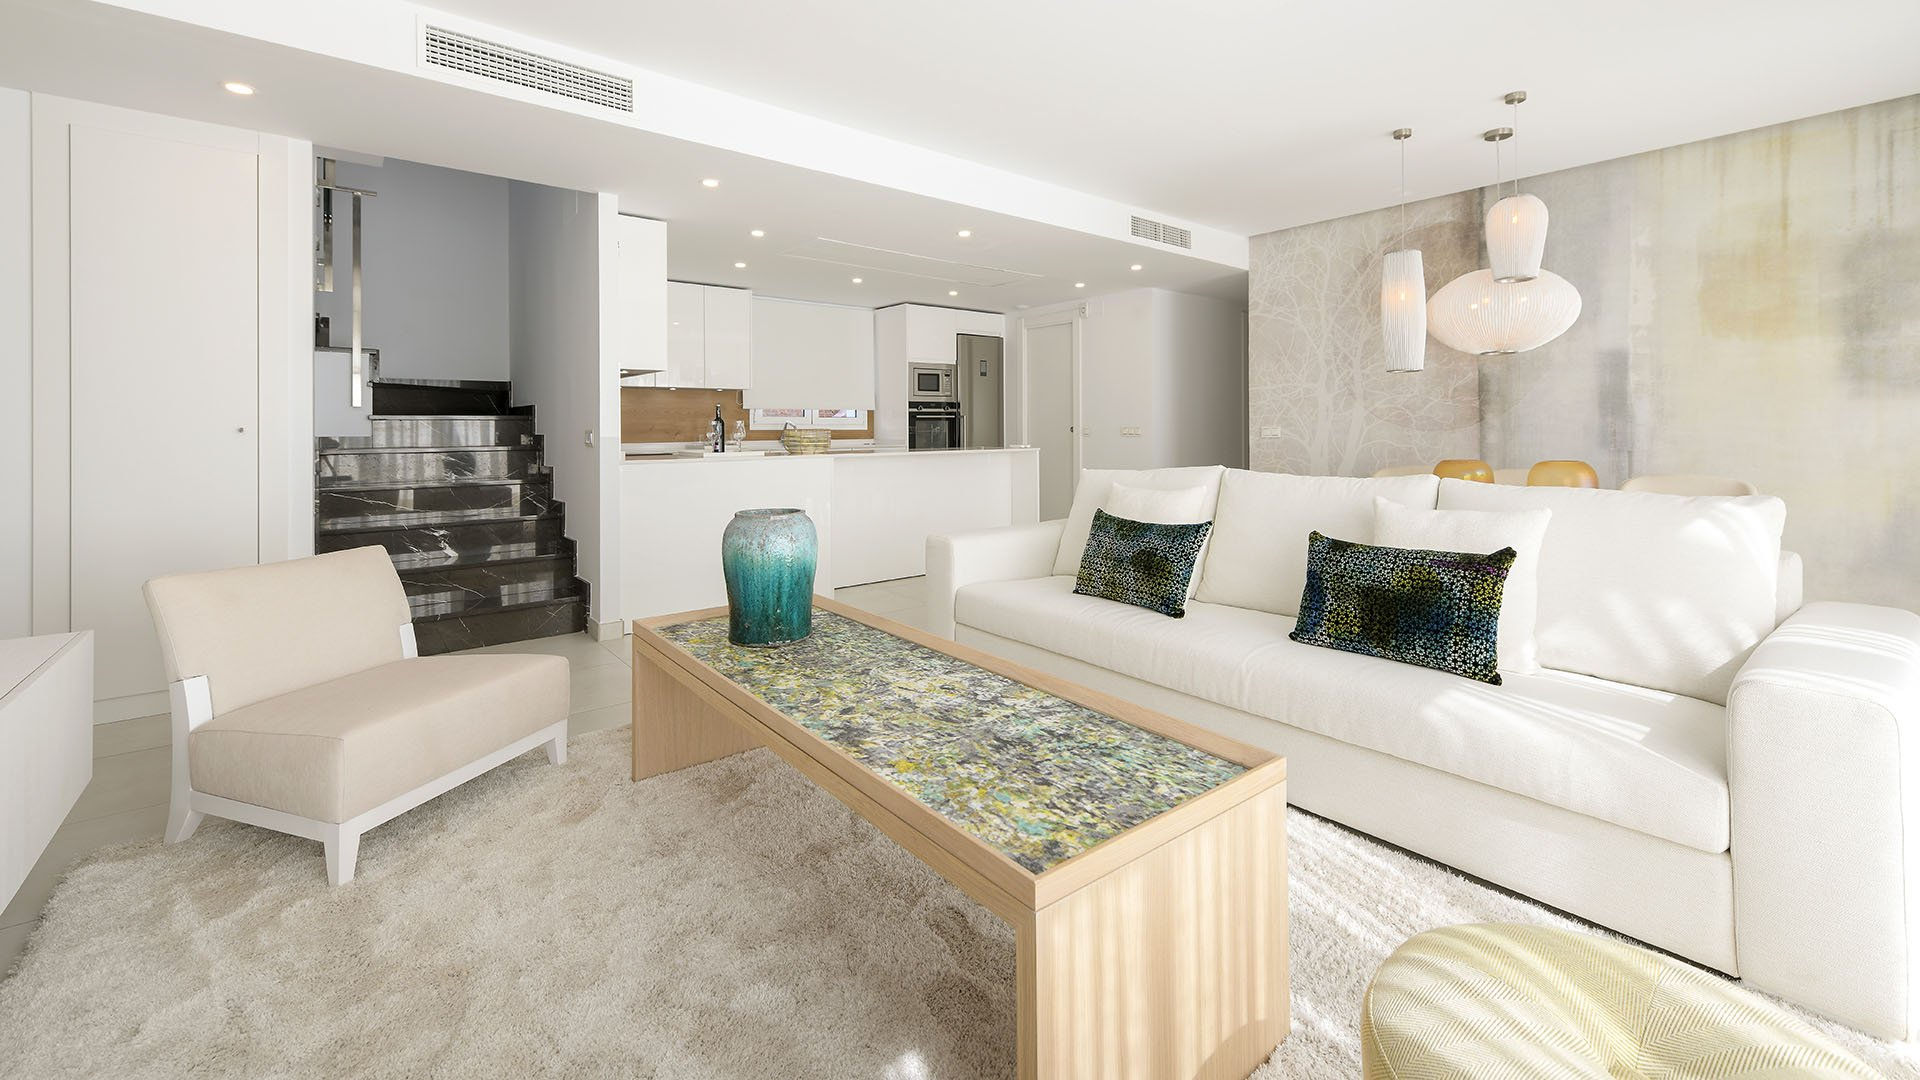 Elements: Modern apartments in Marbella in a quiet residential area